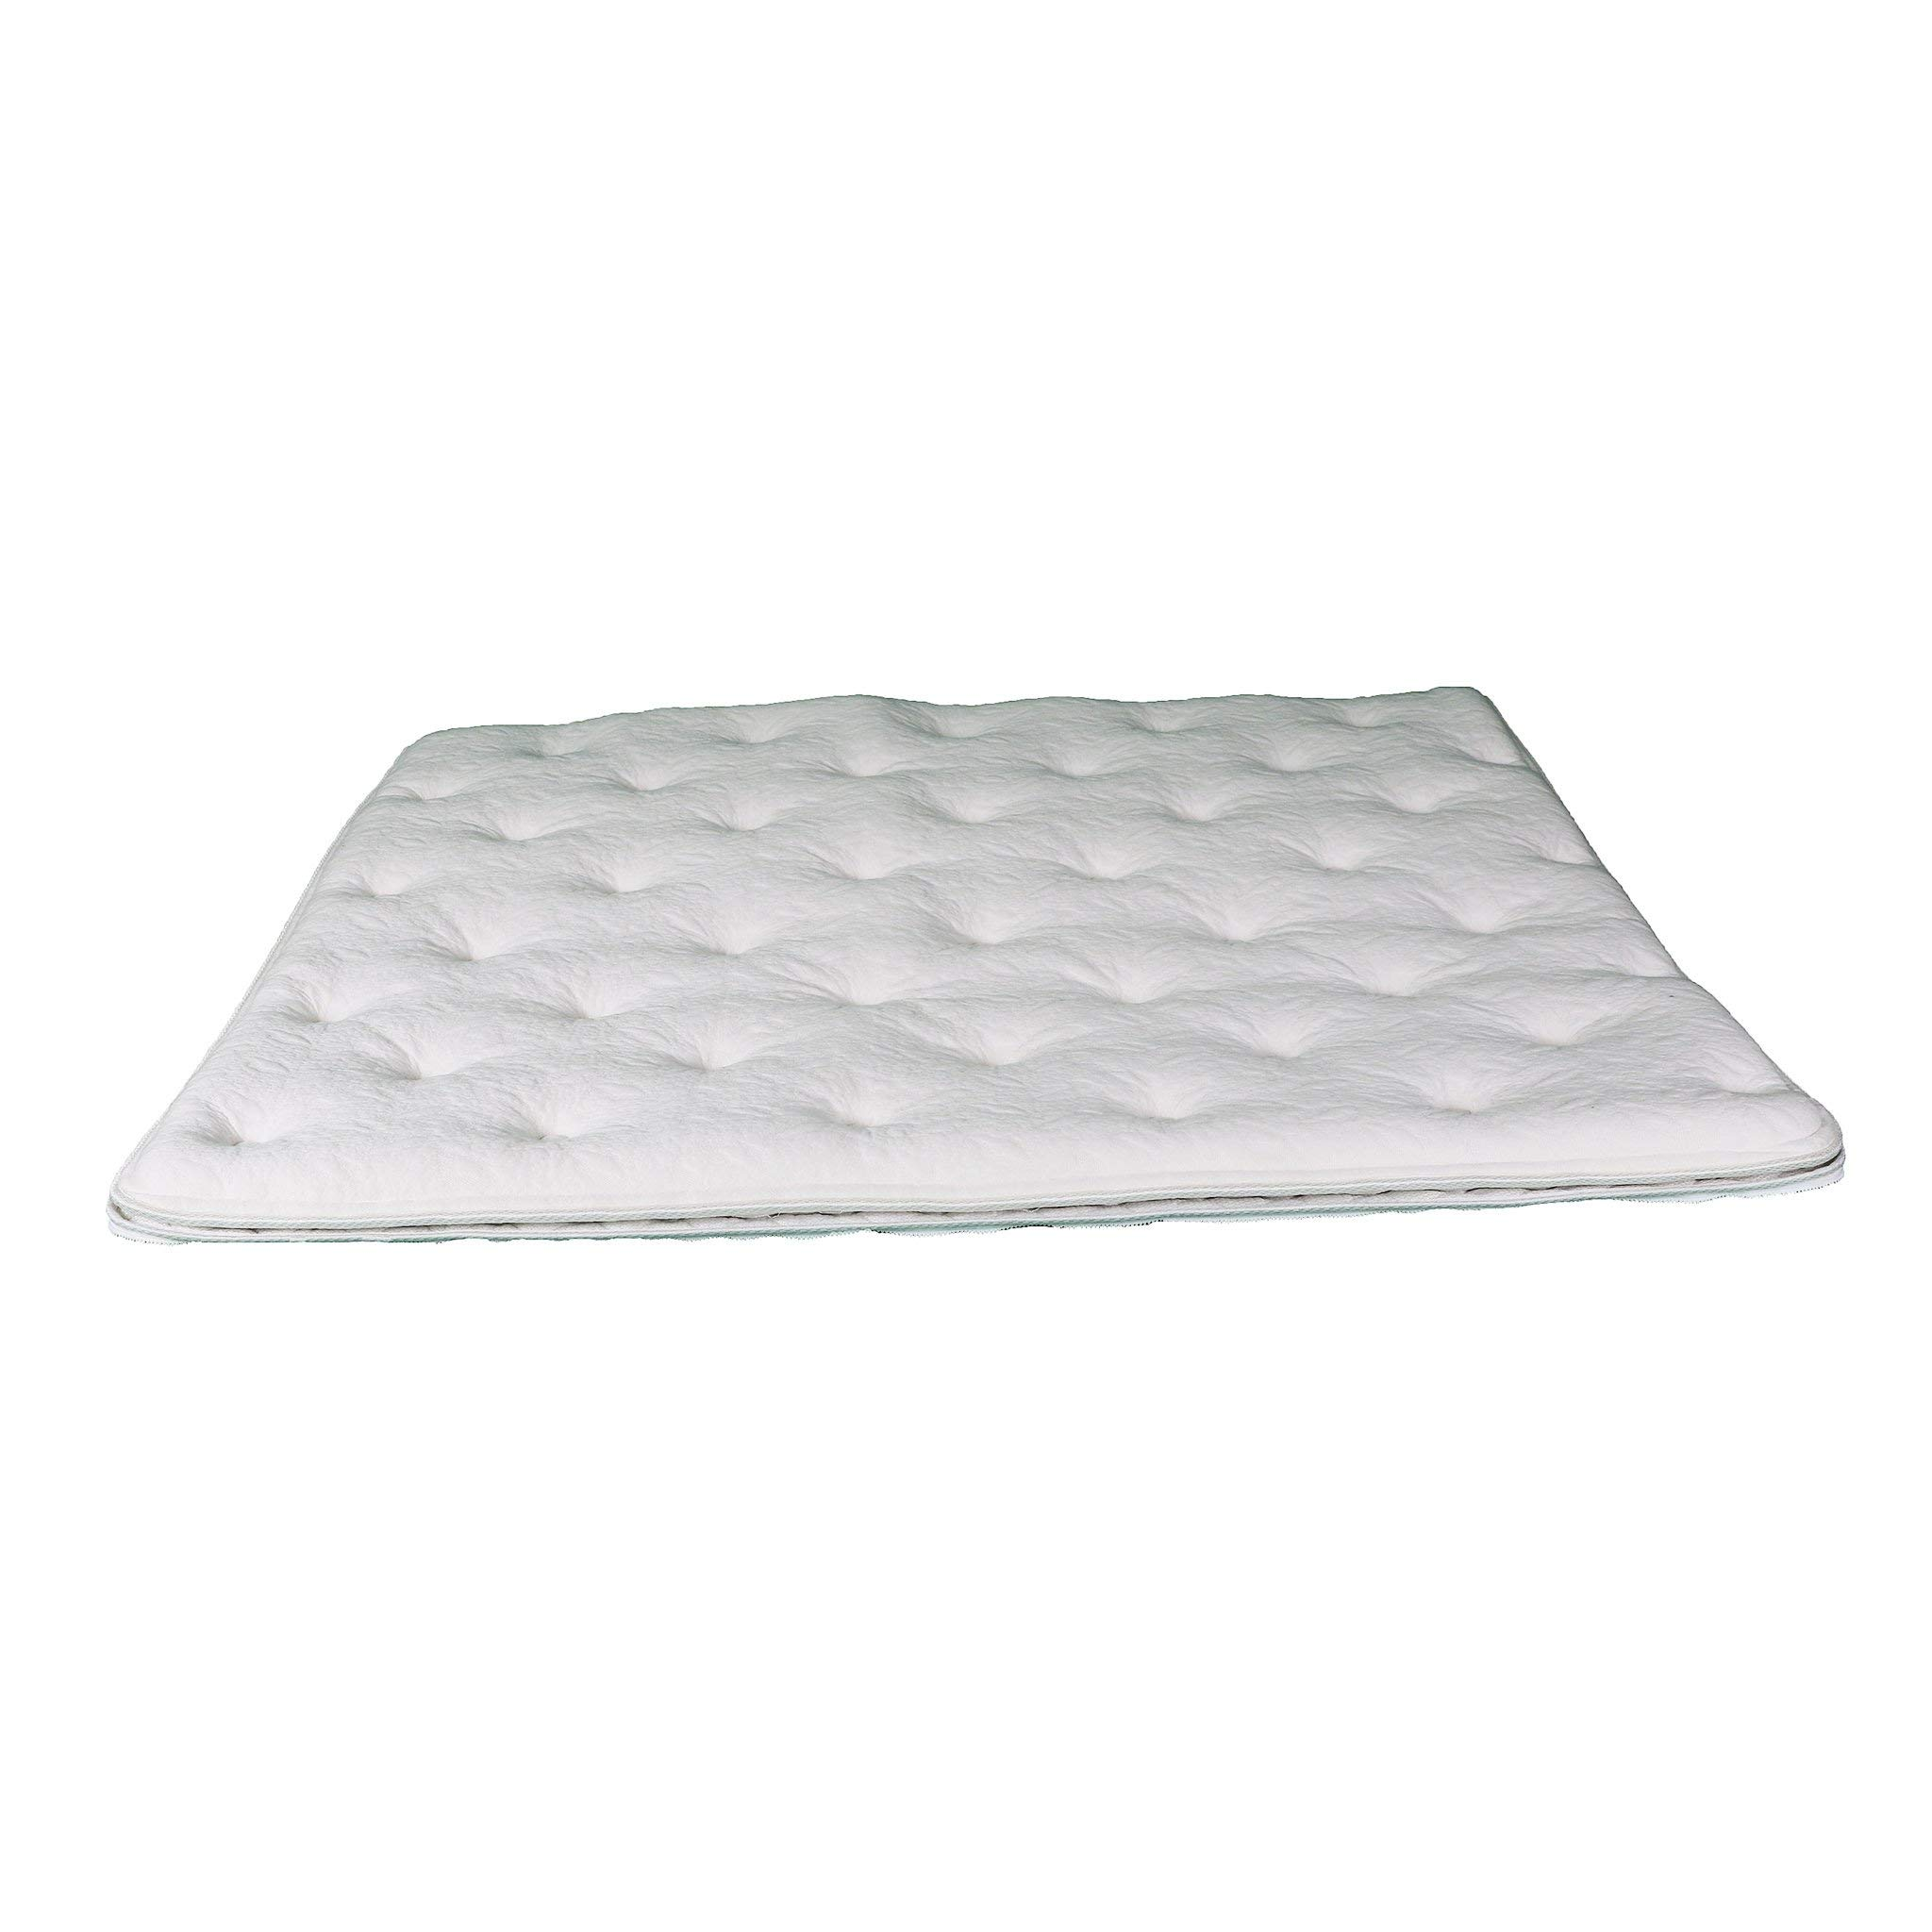 Zip-On Pillow Top for Softside Waterbeds Eastern King 76in x 80in / Aloe Vera by Sterling Sleep System